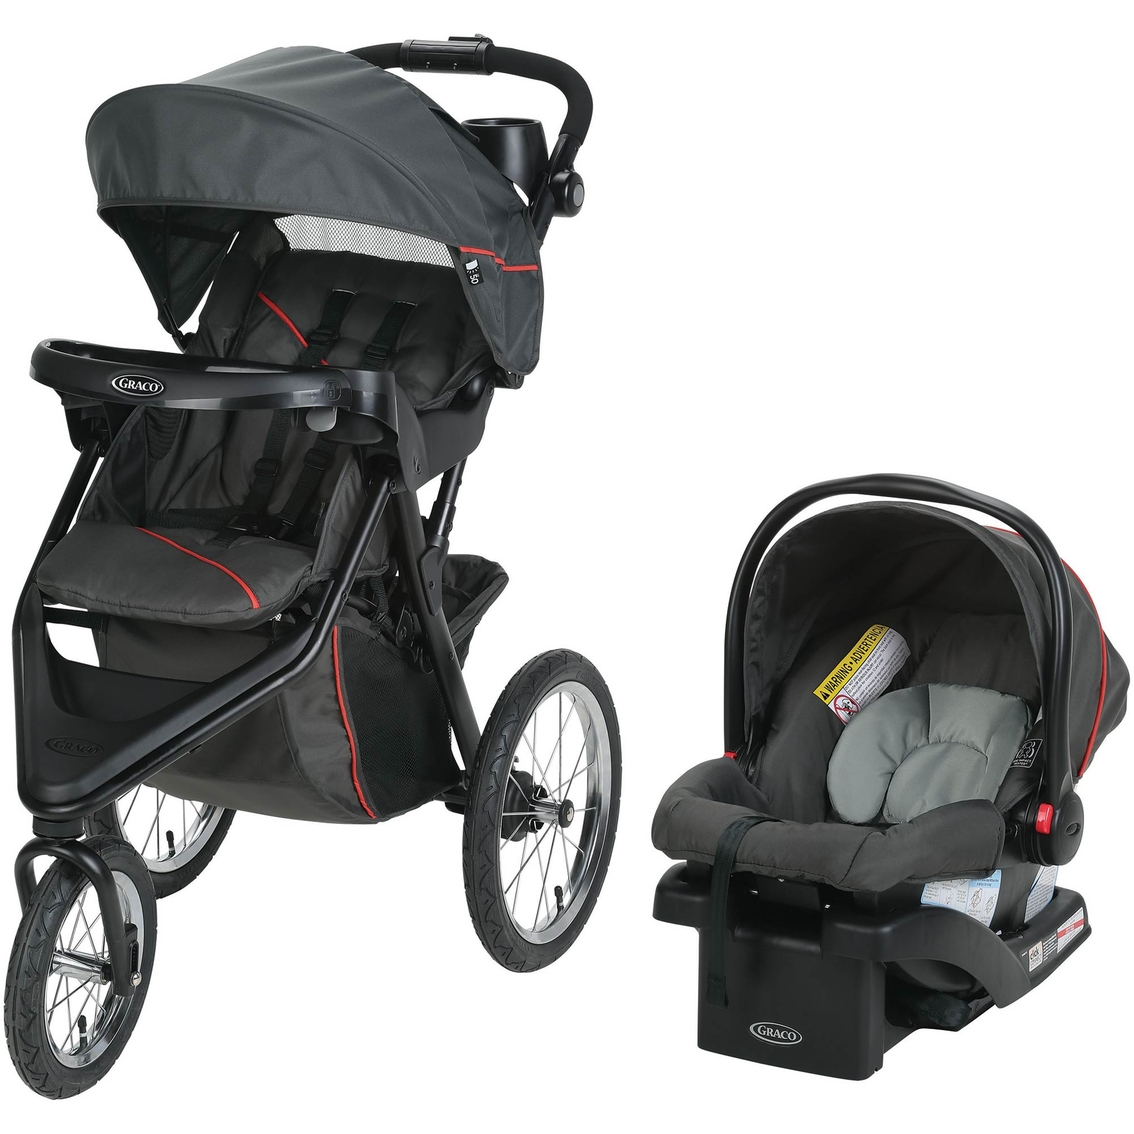 Graco TRAX Jogger Travel System With SnugRide 30 Infant Car Seat